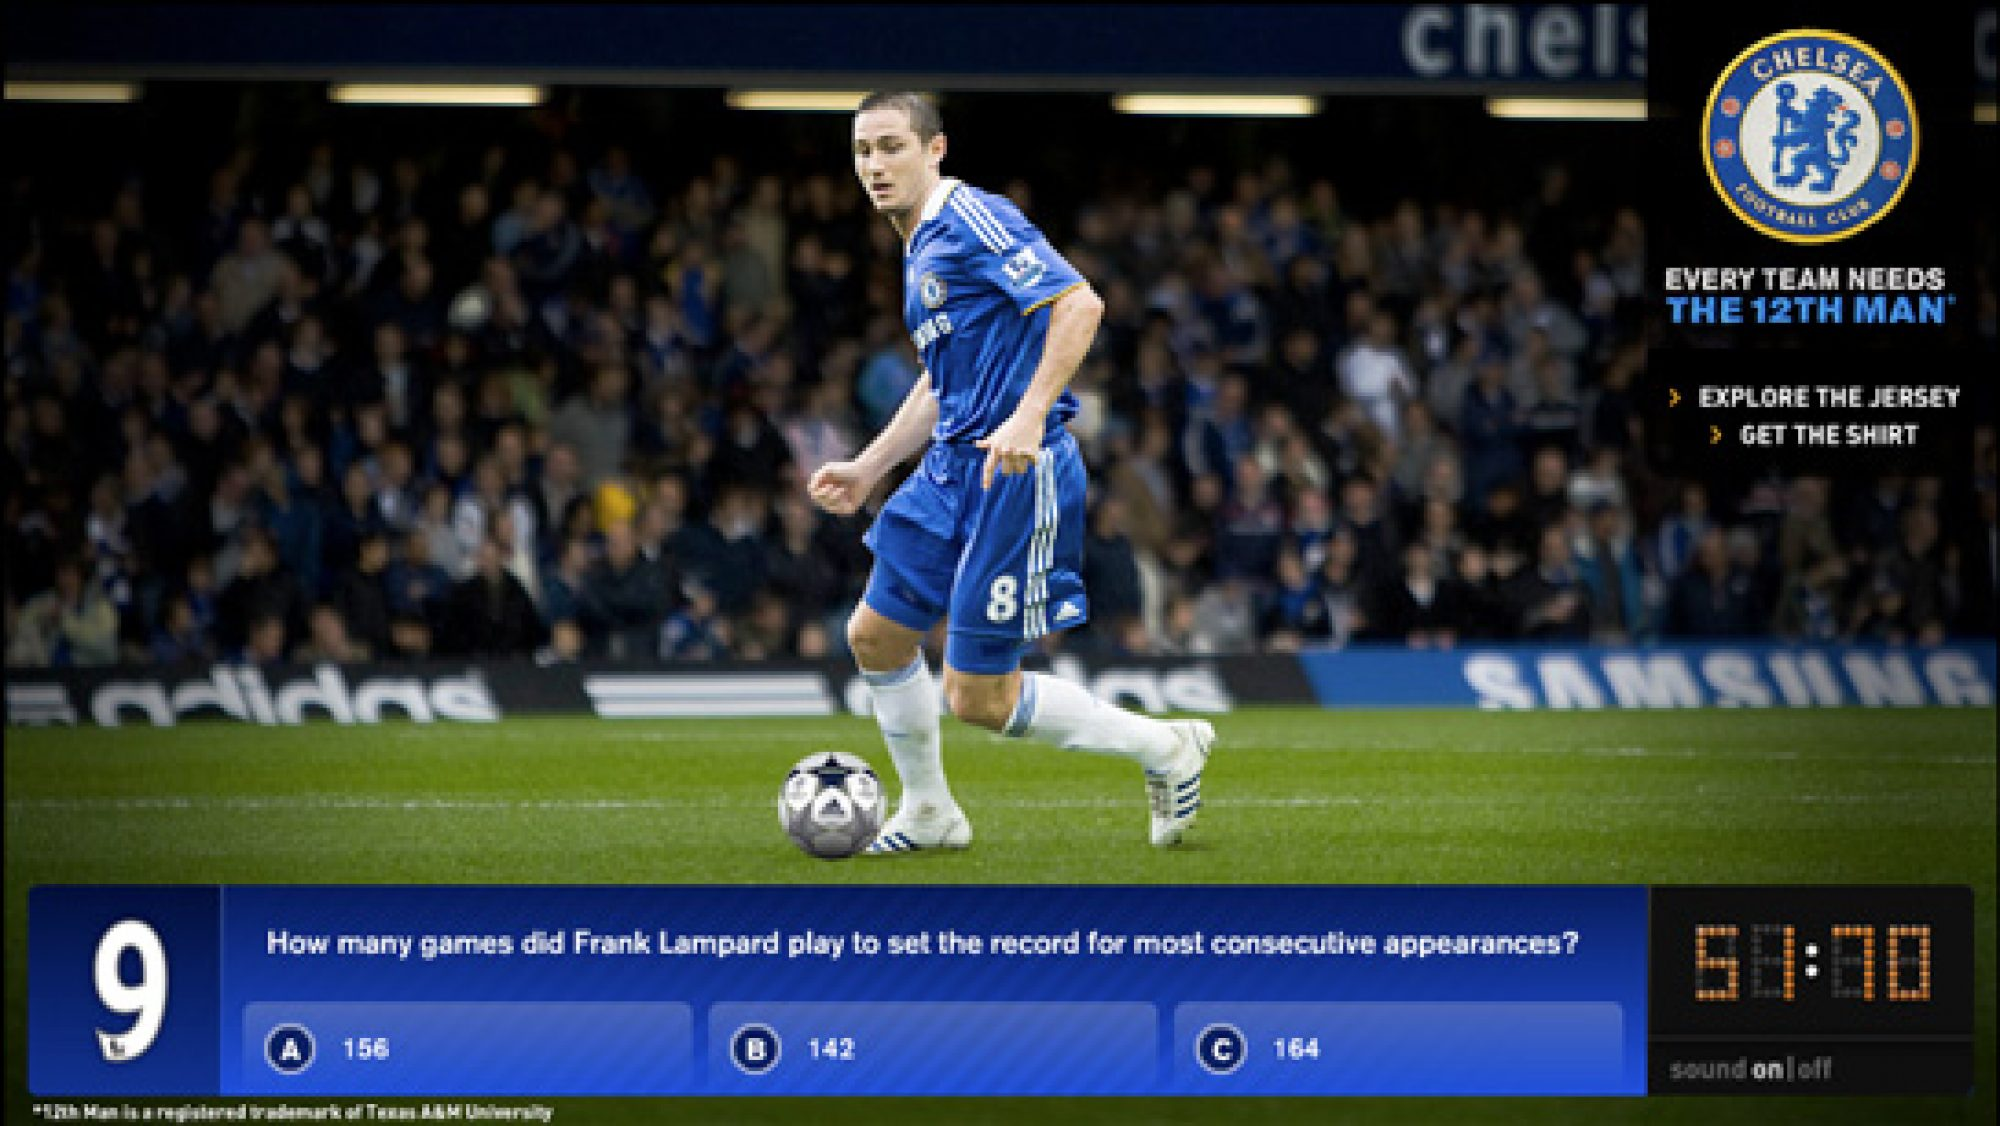 12thman_chelsea_screen3